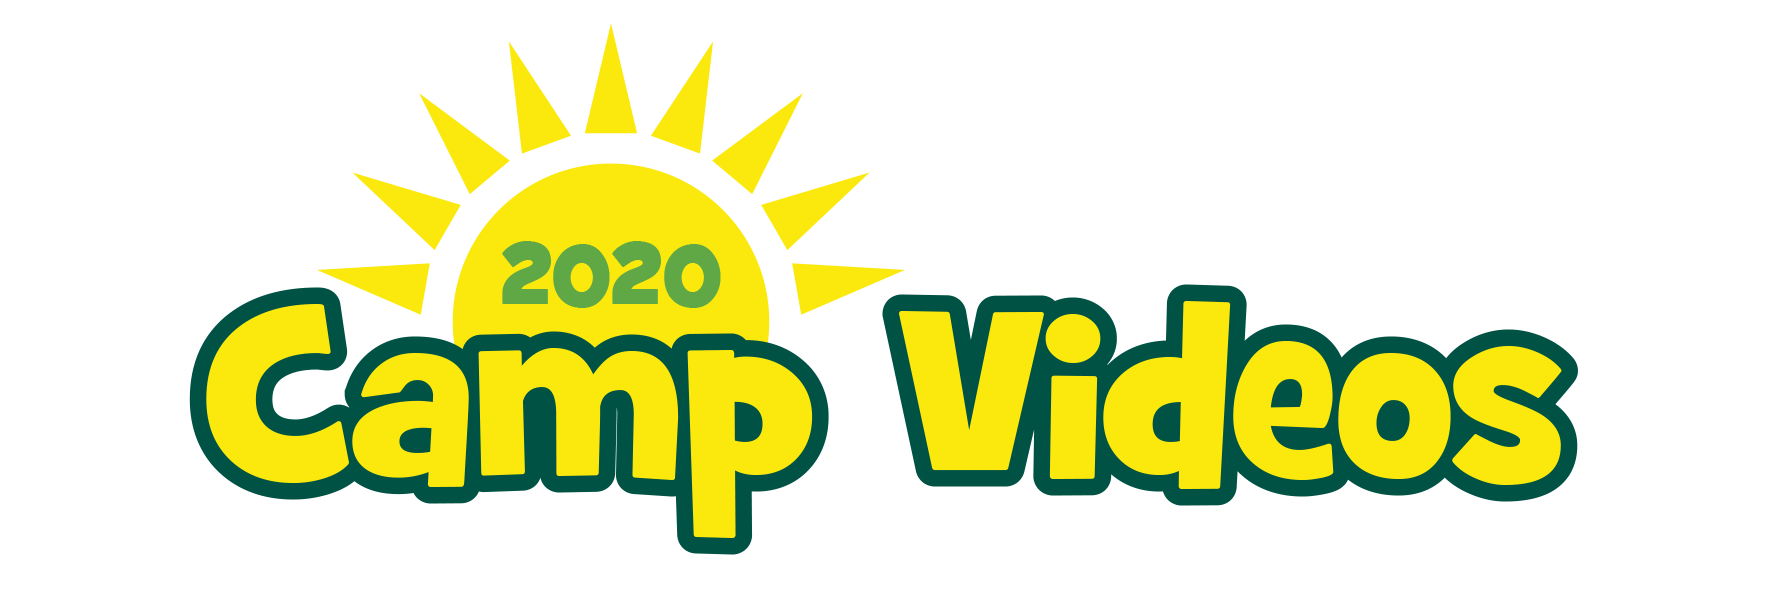 Graphic for camp videos